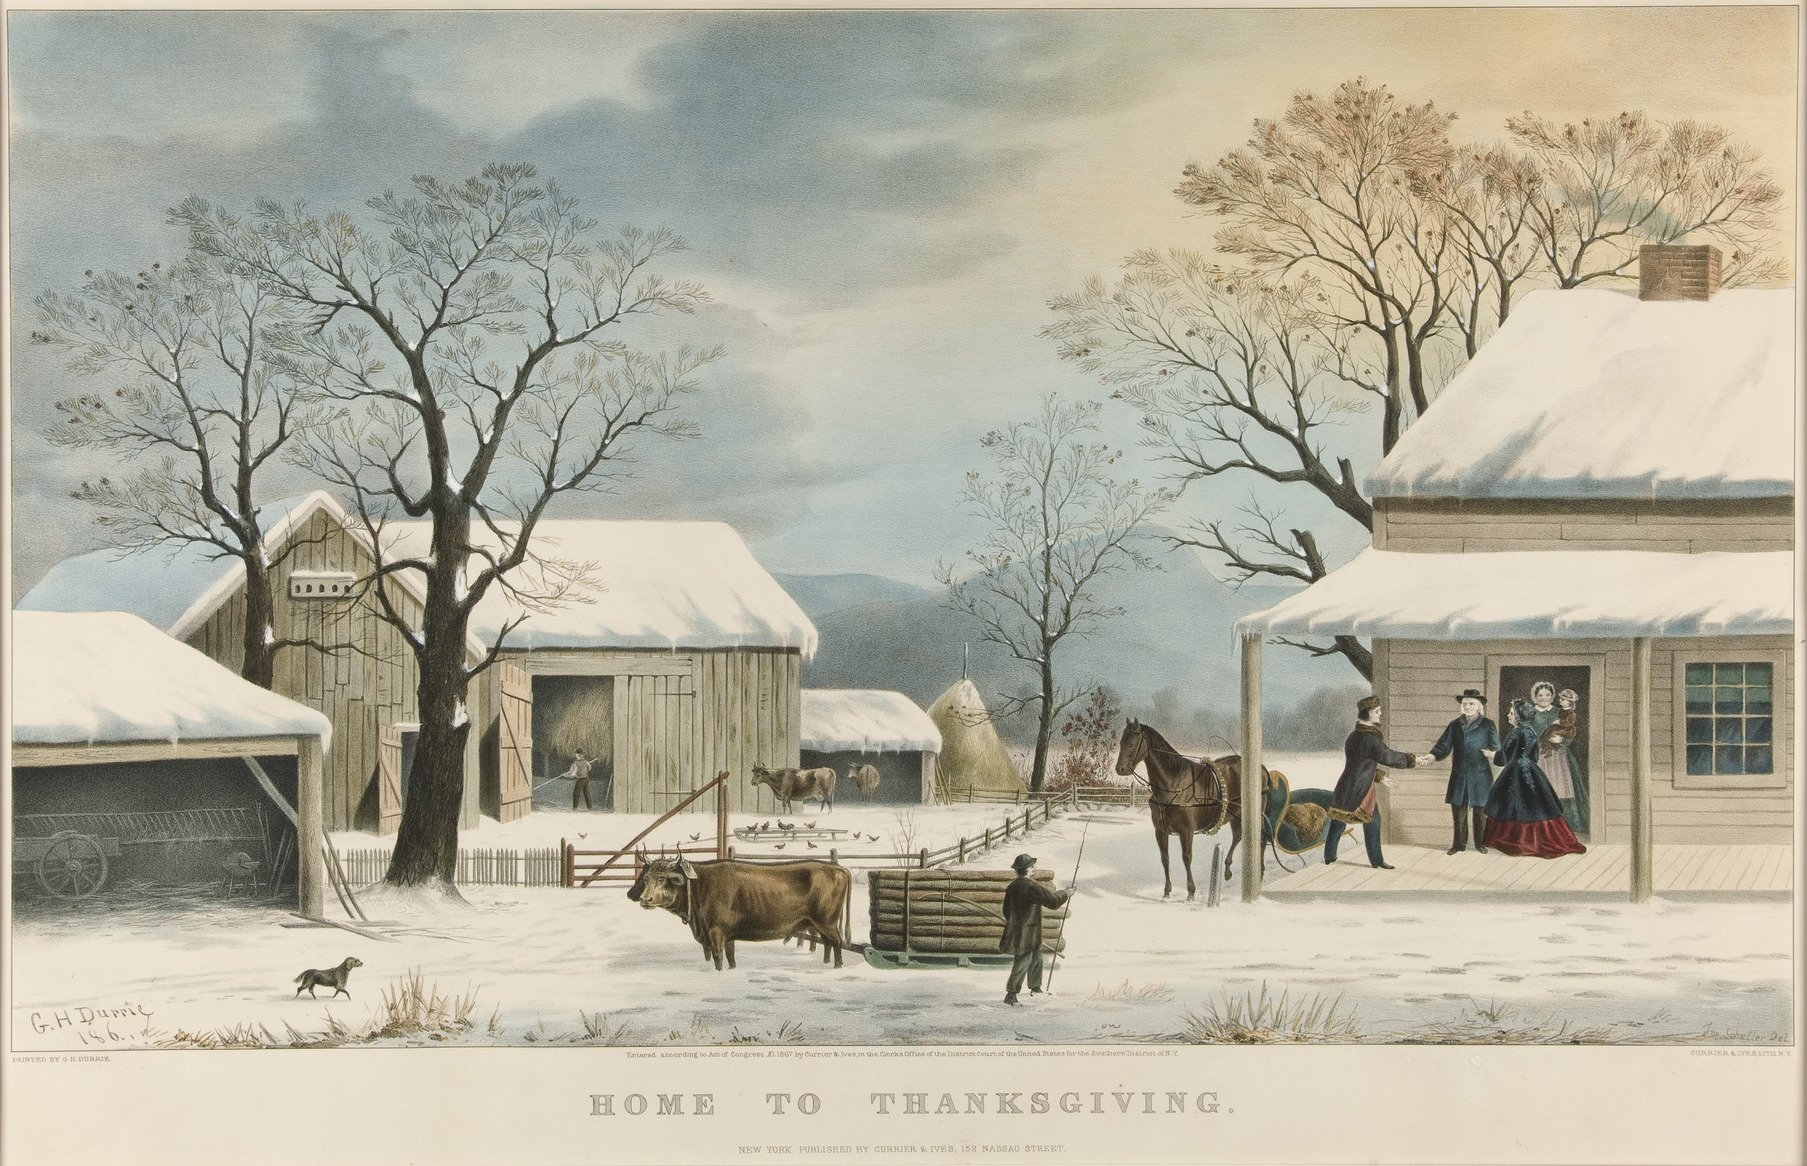 Currier & Ives, George H. Durrie, Home to Thanksgiving